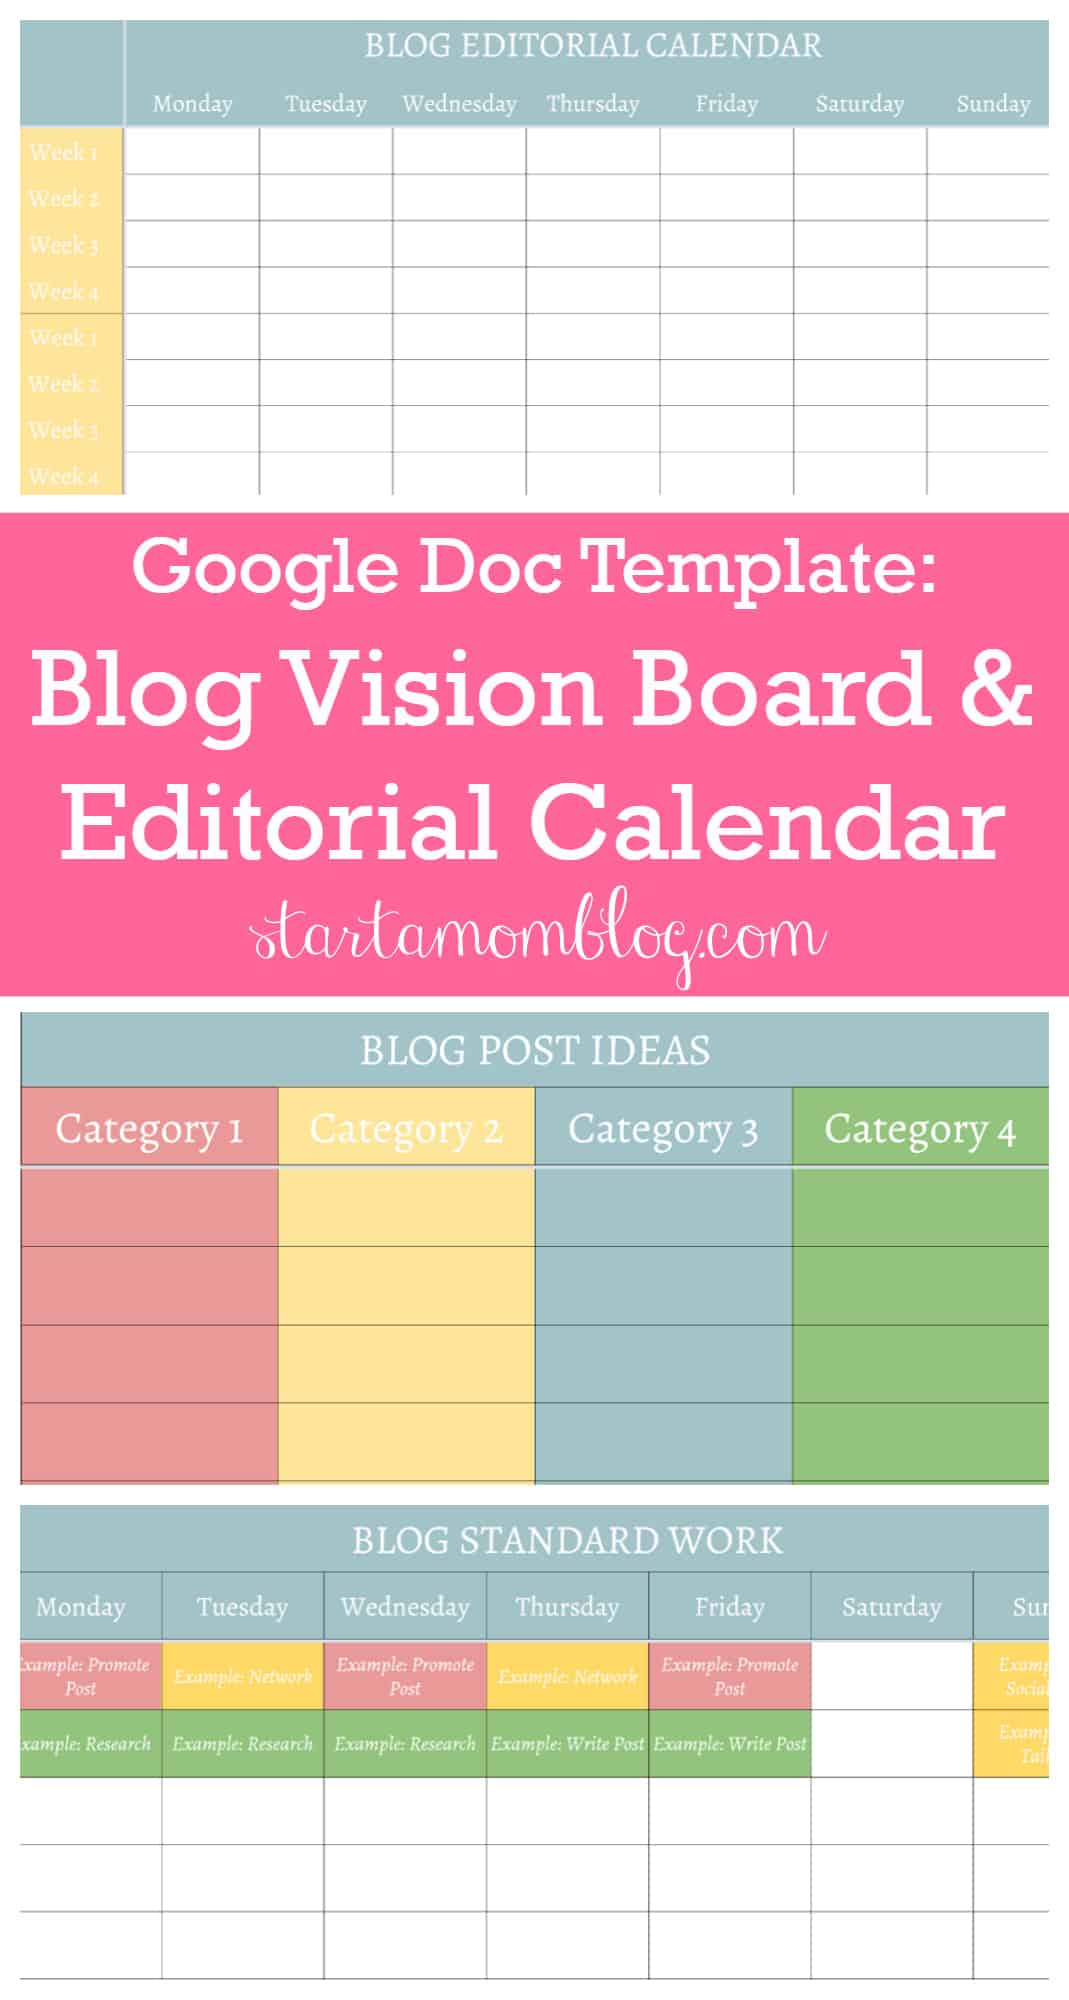 Google Doc Template for a blog vision board and editorial calendar